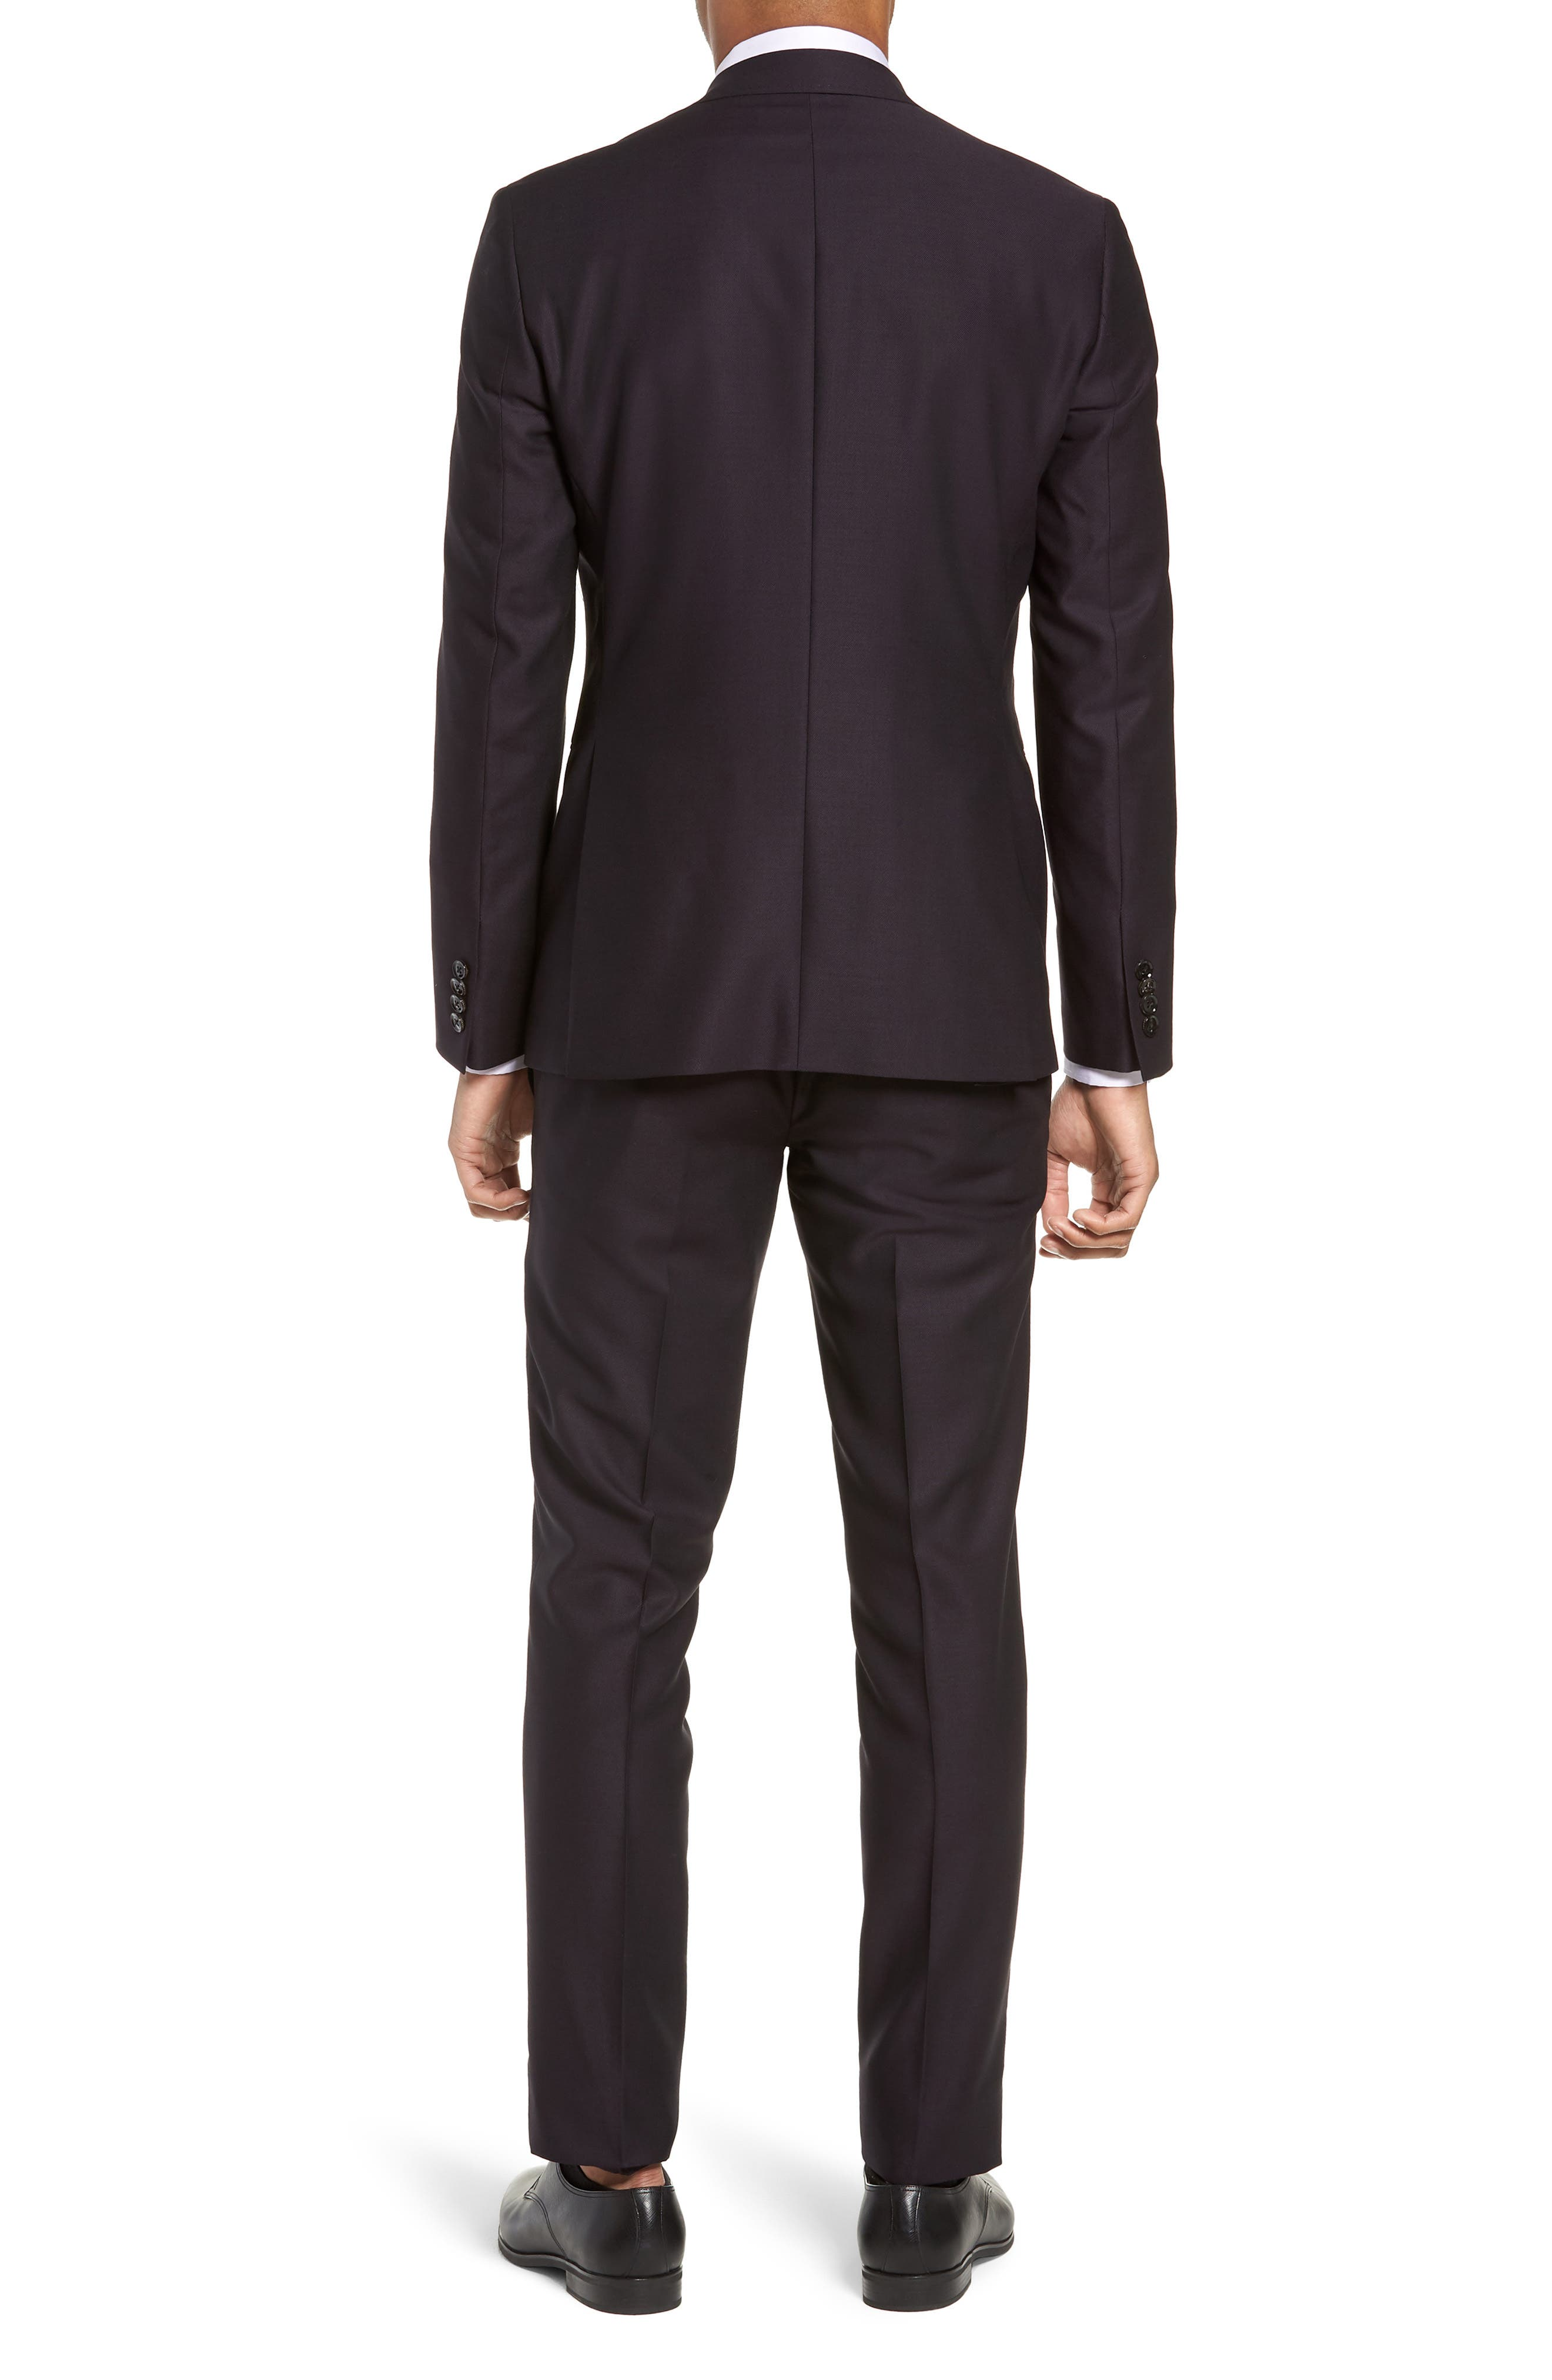 Roger Extra Trim Fit Solid Wool Suit,                             Alternate thumbnail 2, color,                             DEEP EGGPLANT